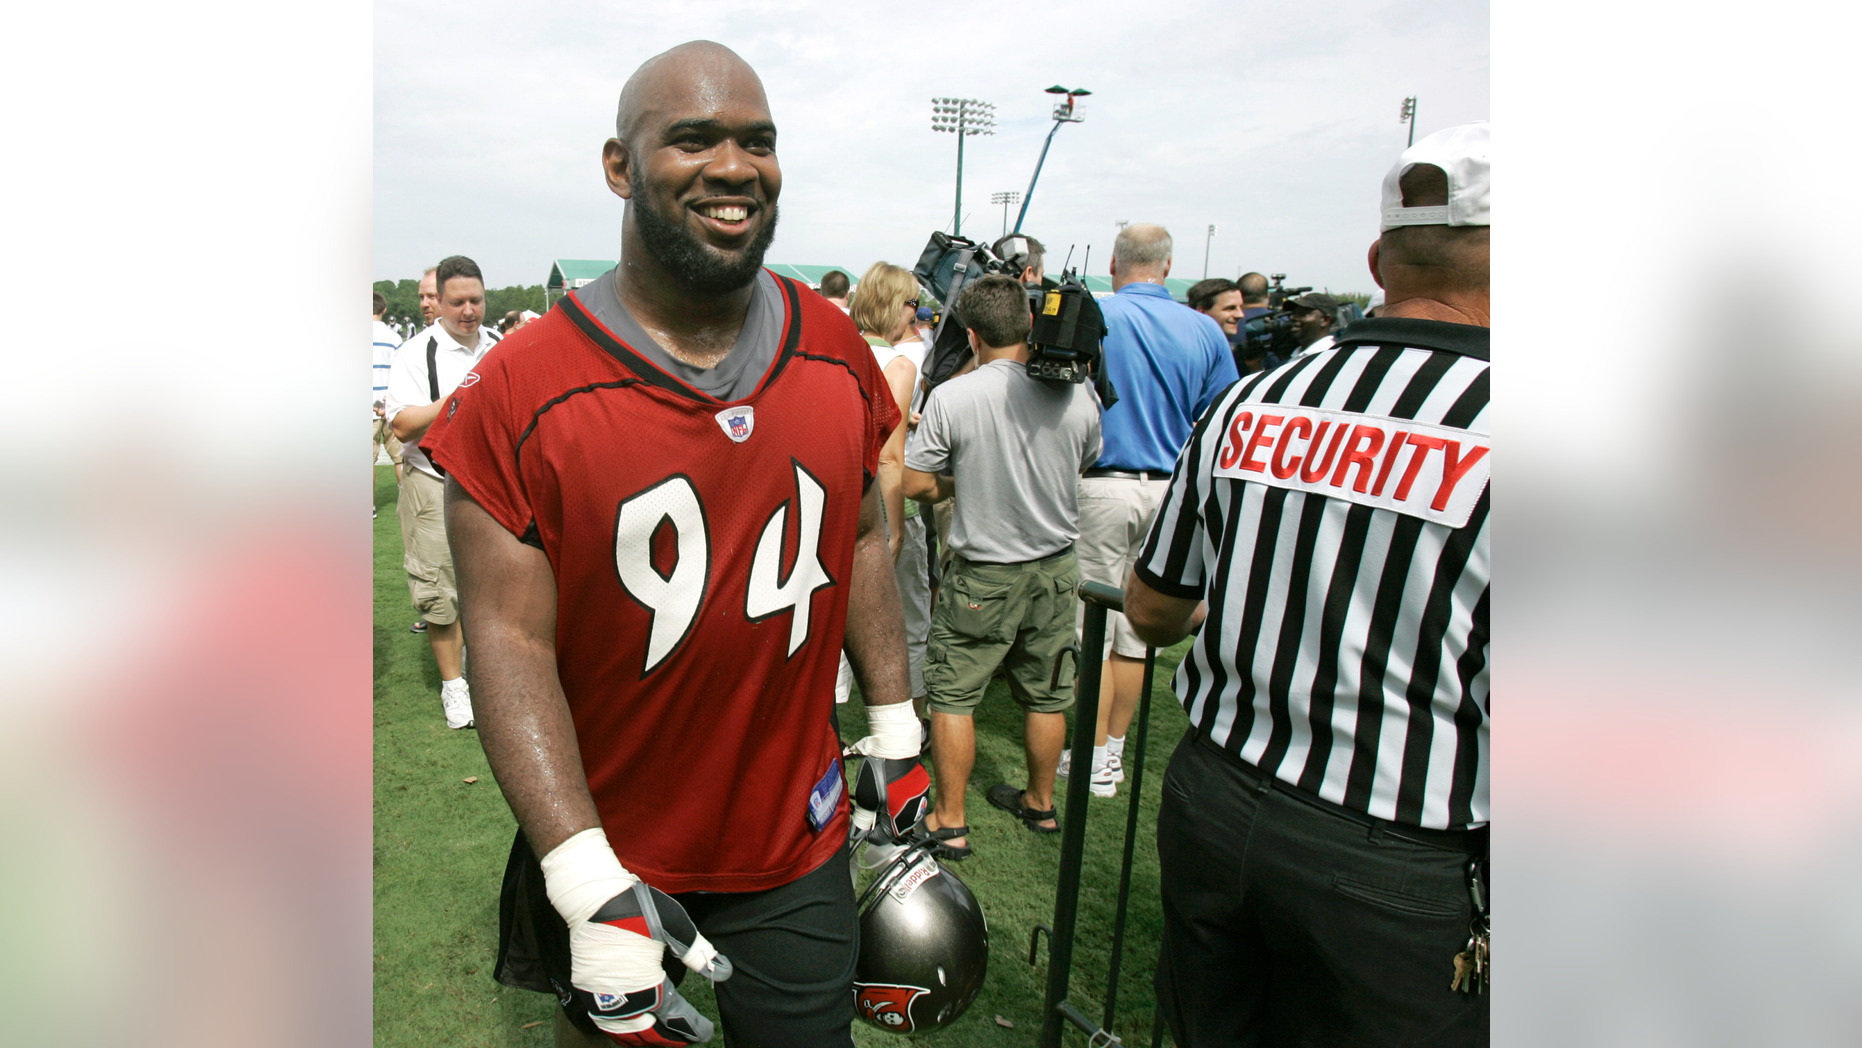 FILE - In this July 27, 2007, file photo, Tampa Bay Buccaneers defensive end Greg Spires walks off the practice field after the morning session at NFL football training camp in Lake Buena Vista, Fla. Authorities in New Hampshire say Spire, a former player for the pro football player, has been arrested in the state's capital city for violating a protective order. (AP Photo/John Raoux, File)